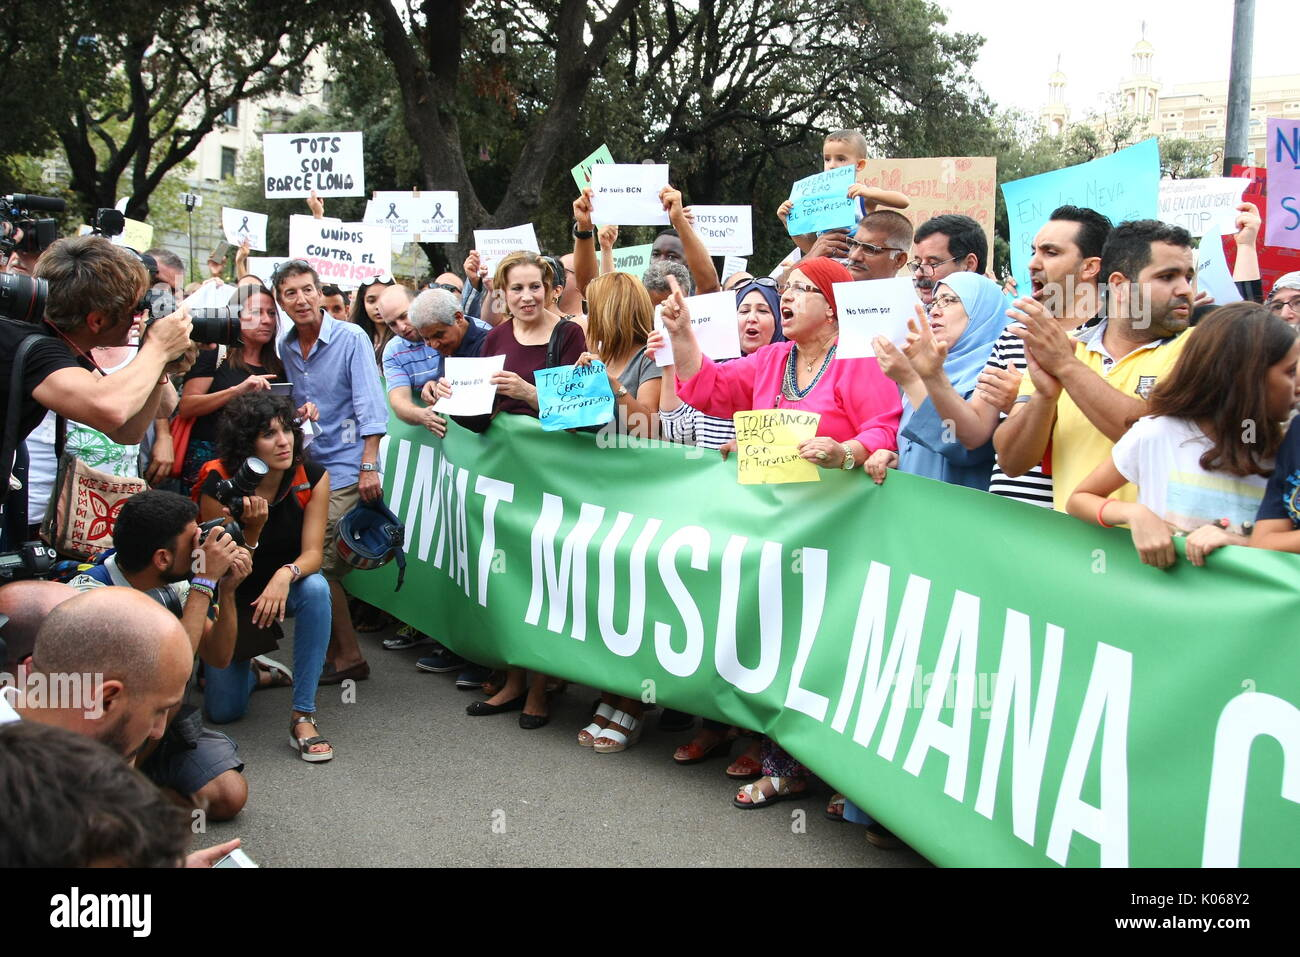 Barcelona, Spain. 21st Aug, 2017. Spain muslim comunity at a demonstration against Barcelona terrorist attacks at Catalunya Square on Monday 21st August 2017. Credit: Gtres Información más Comuniación on line,S.L./Alamy Live News Stock Photo